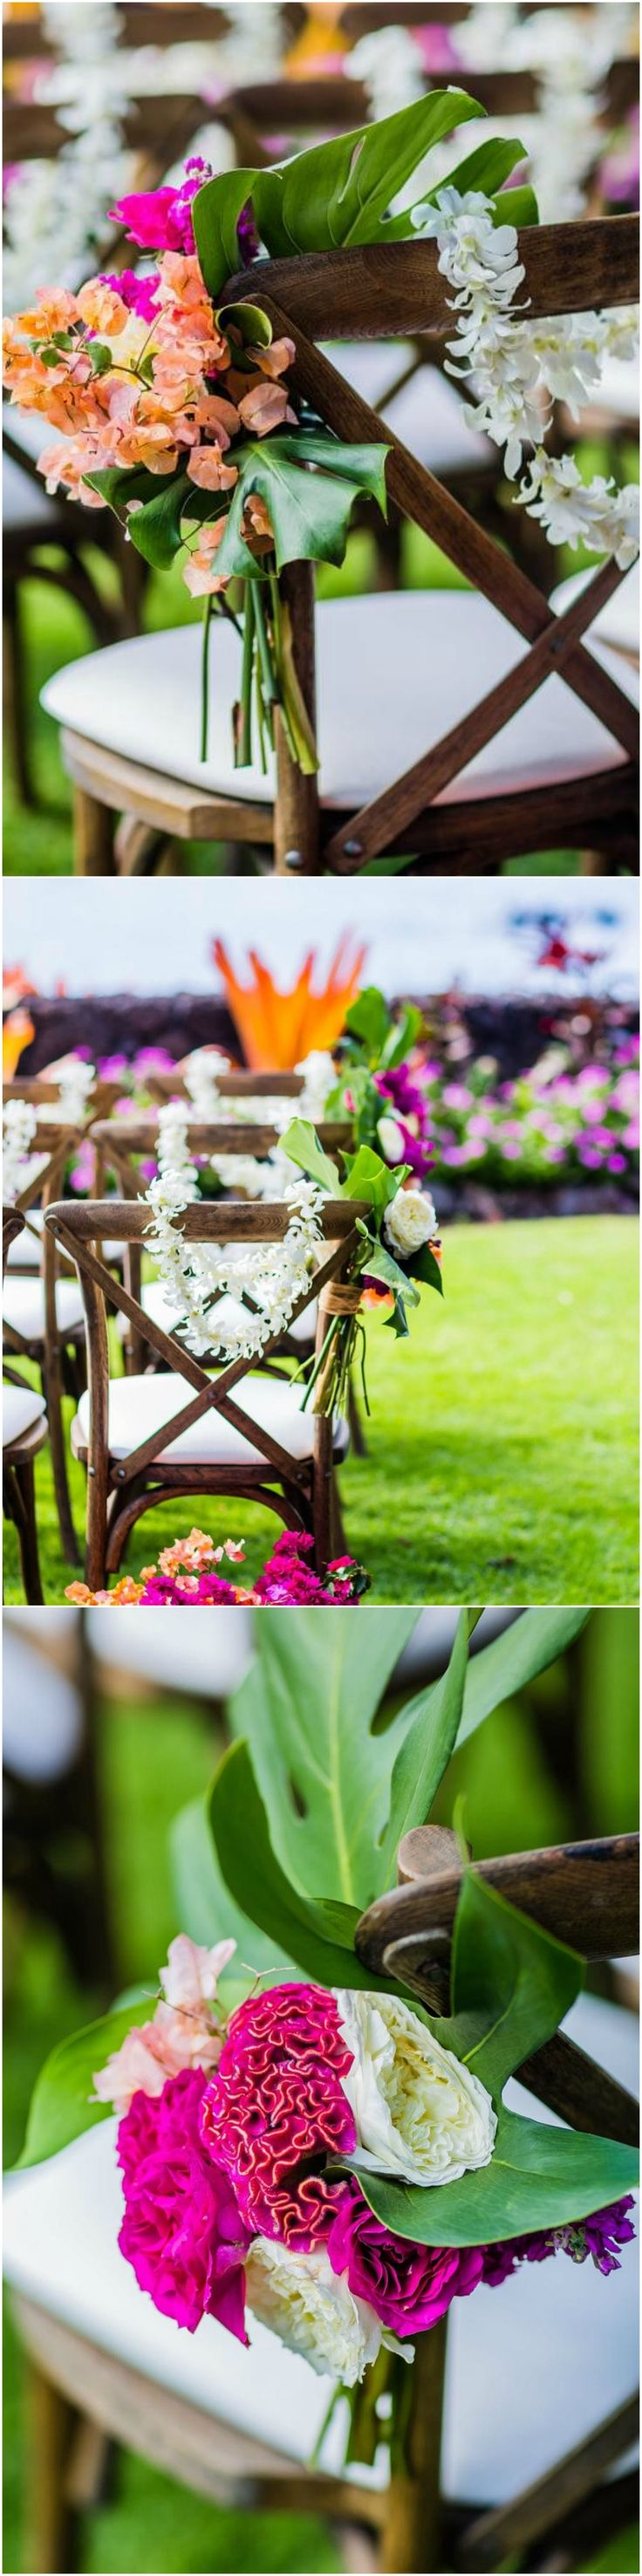 Hawaii wedding, ceremony seating, chair décor, tropical flowers, hot pink & orange, palm fronds, oceanfront // Damion Hamilton Photographer